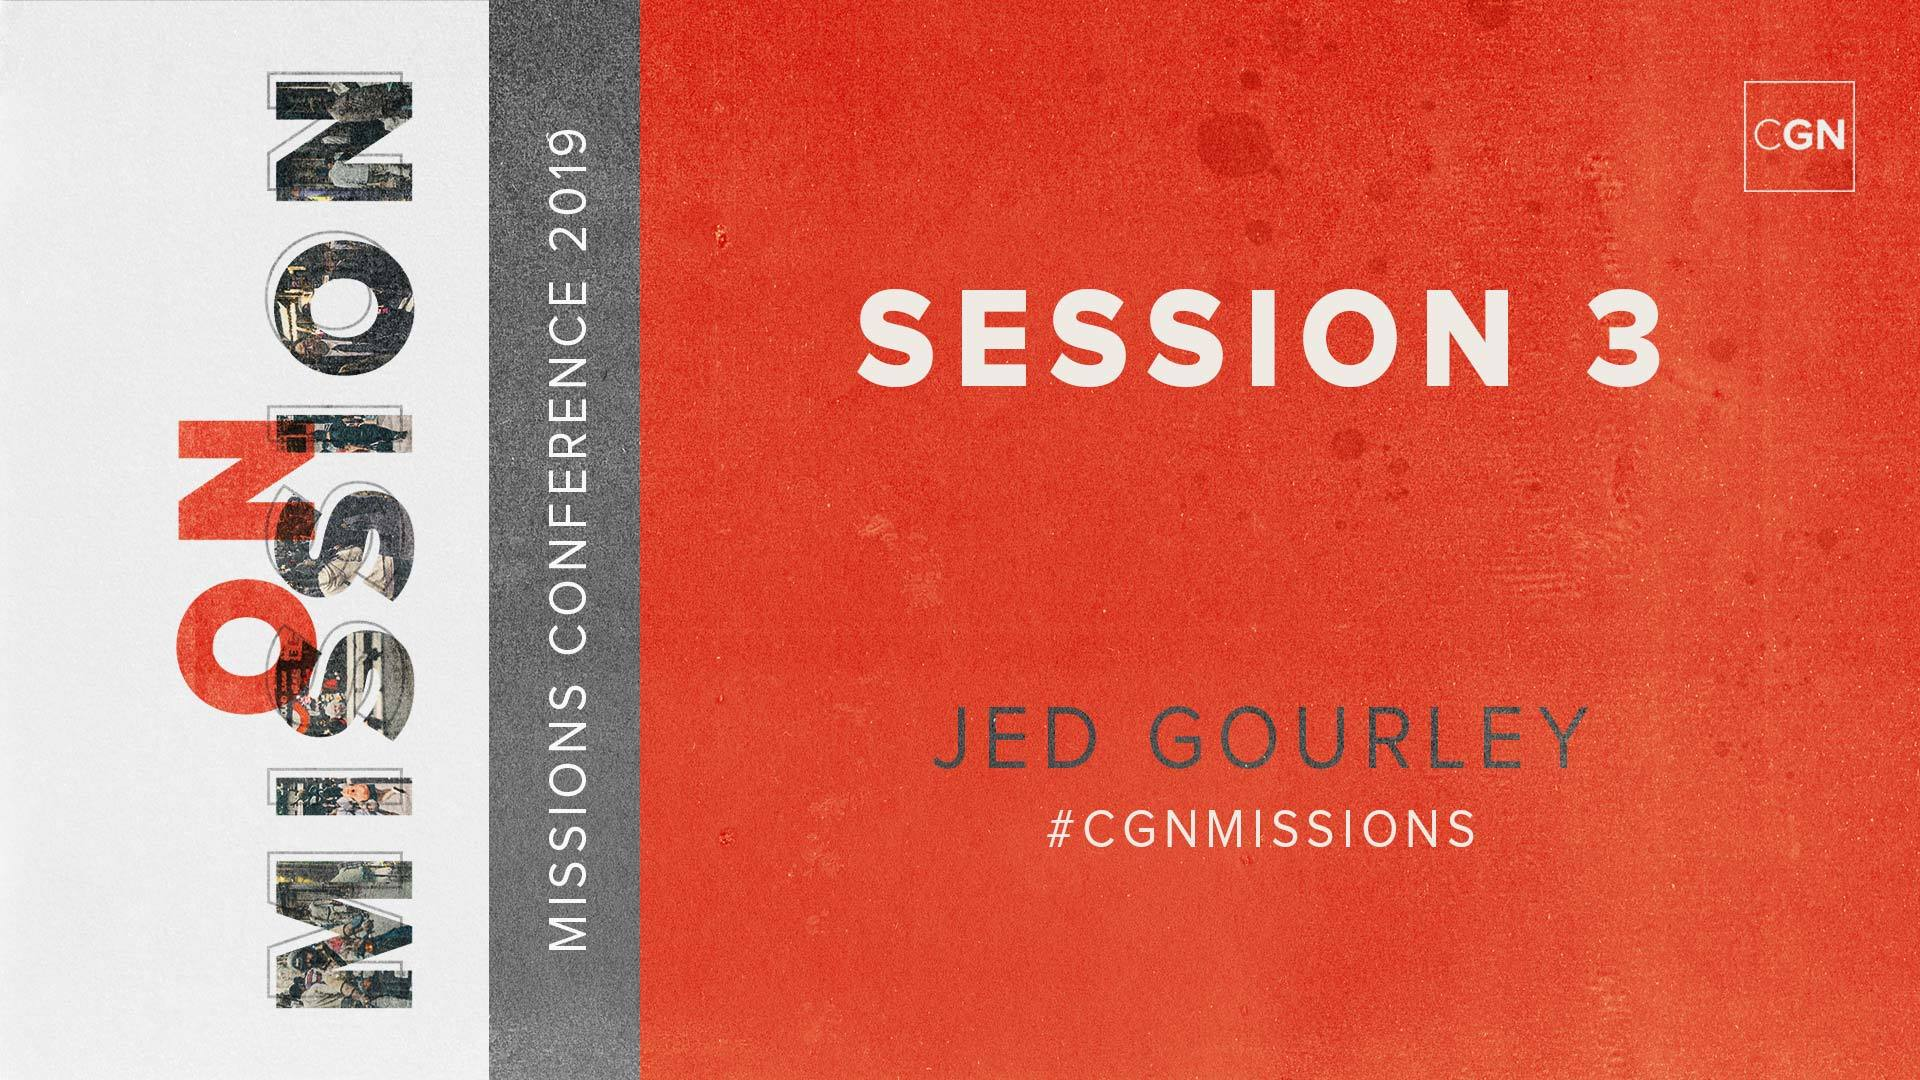 Session #3 - Jed Gourley